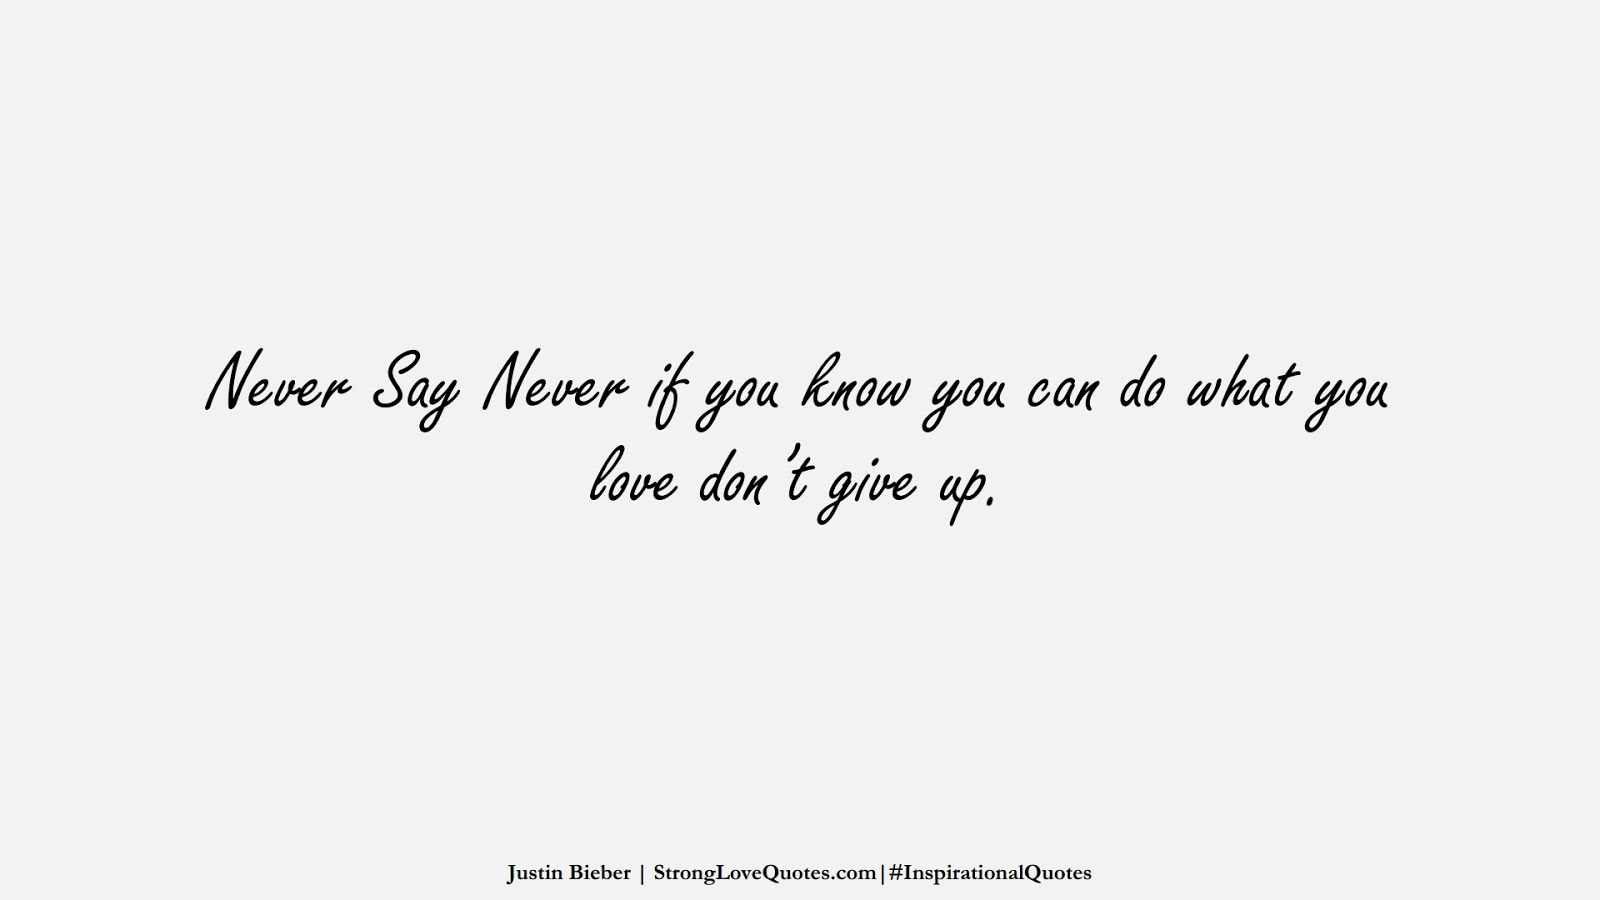 Never Say Never if you know you can do what you love don't give up. (Justin Bieber);  #InspirationalQuotes